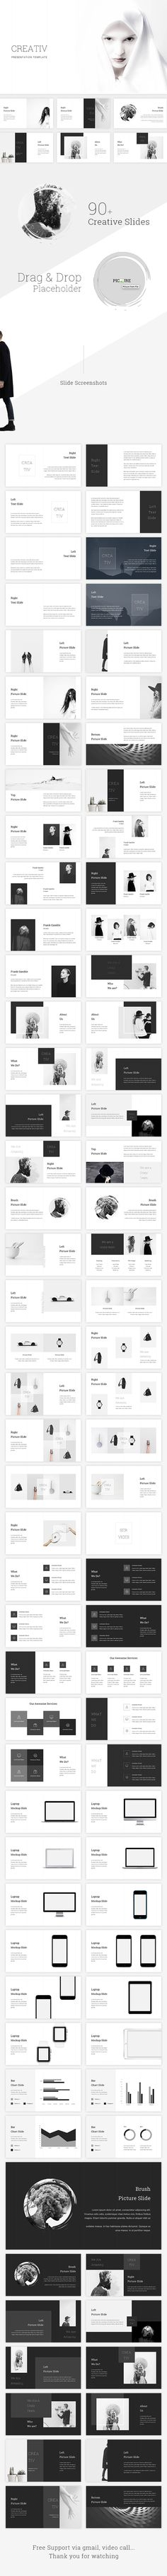 Creative #Keynote Template - Creative Keynote #Templates Download here: https://graphicriver.net/item/creative-keynote-template/19368634?ref=alena994